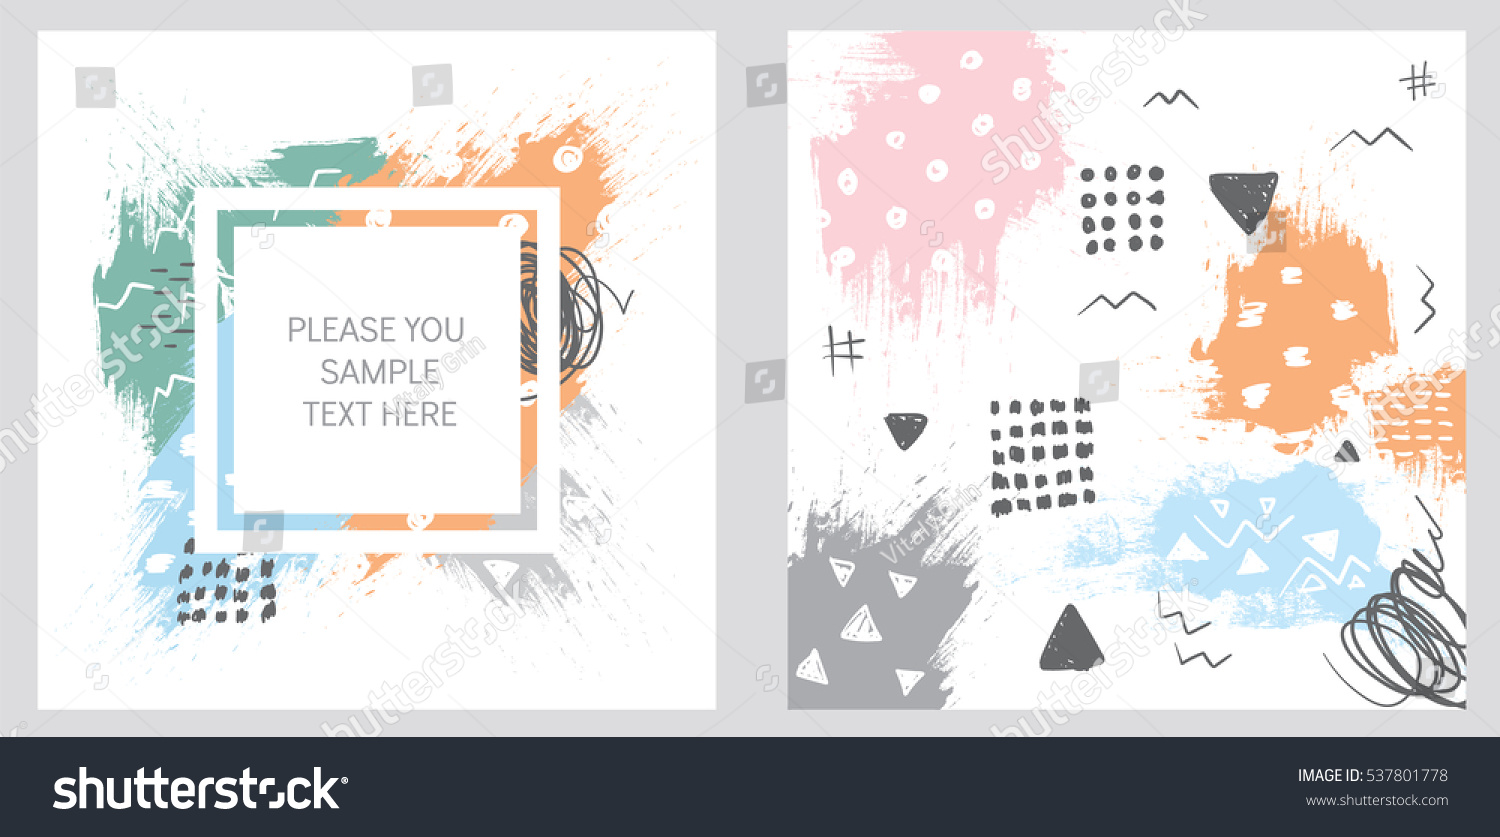 Abstract Illustration Postcards Flyers Banners Vector Stock Vector ...